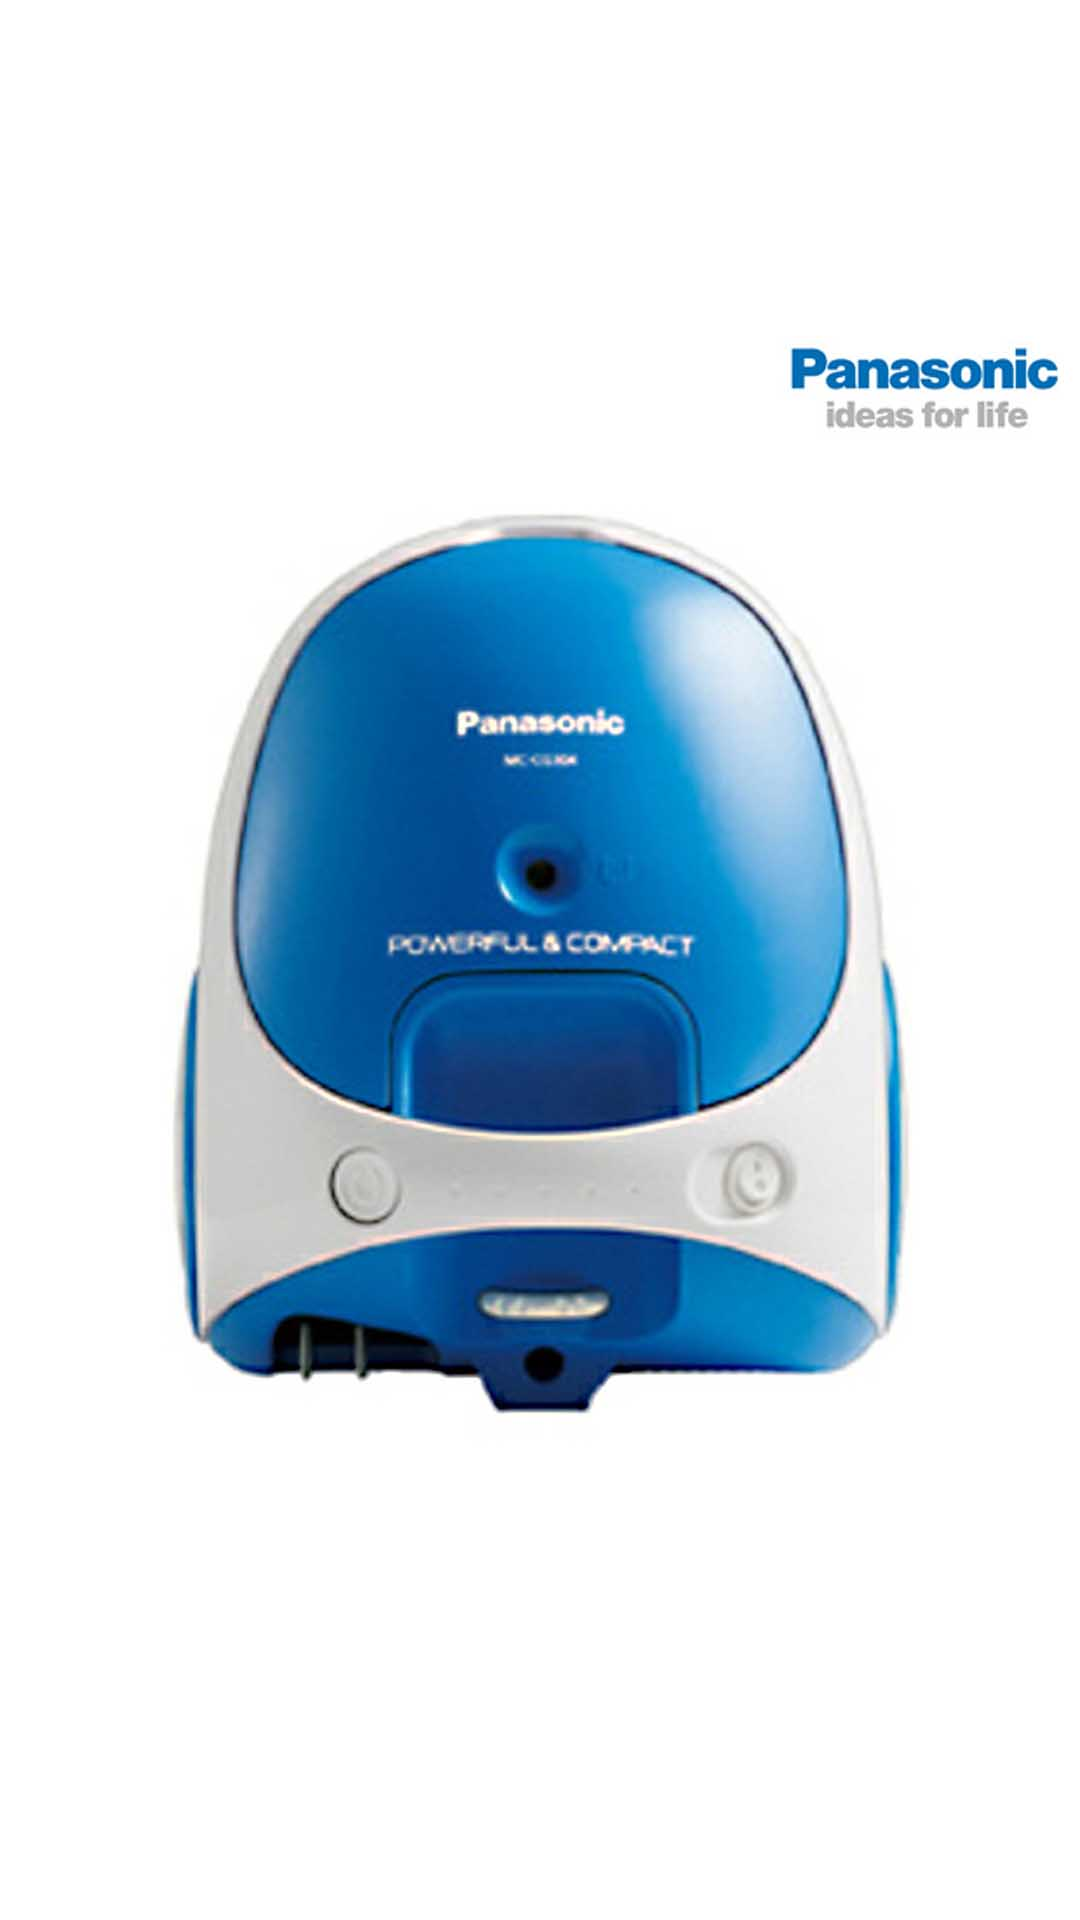 Panasonic CG-304 Dry Vacuum Cleaner (Blue & White)